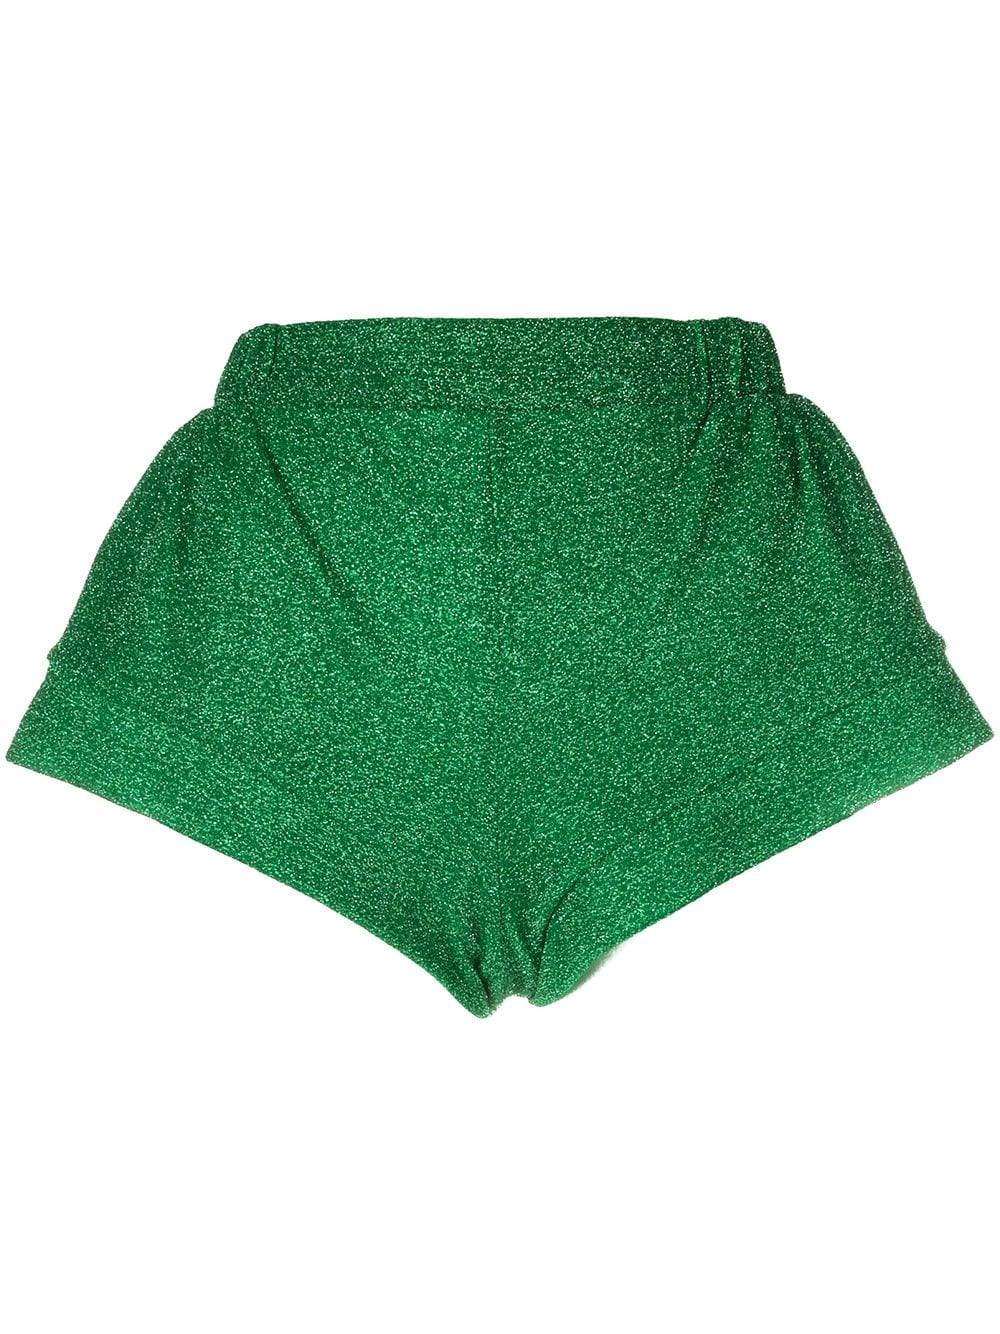 OSEREE Elasticated Fitted Shorts